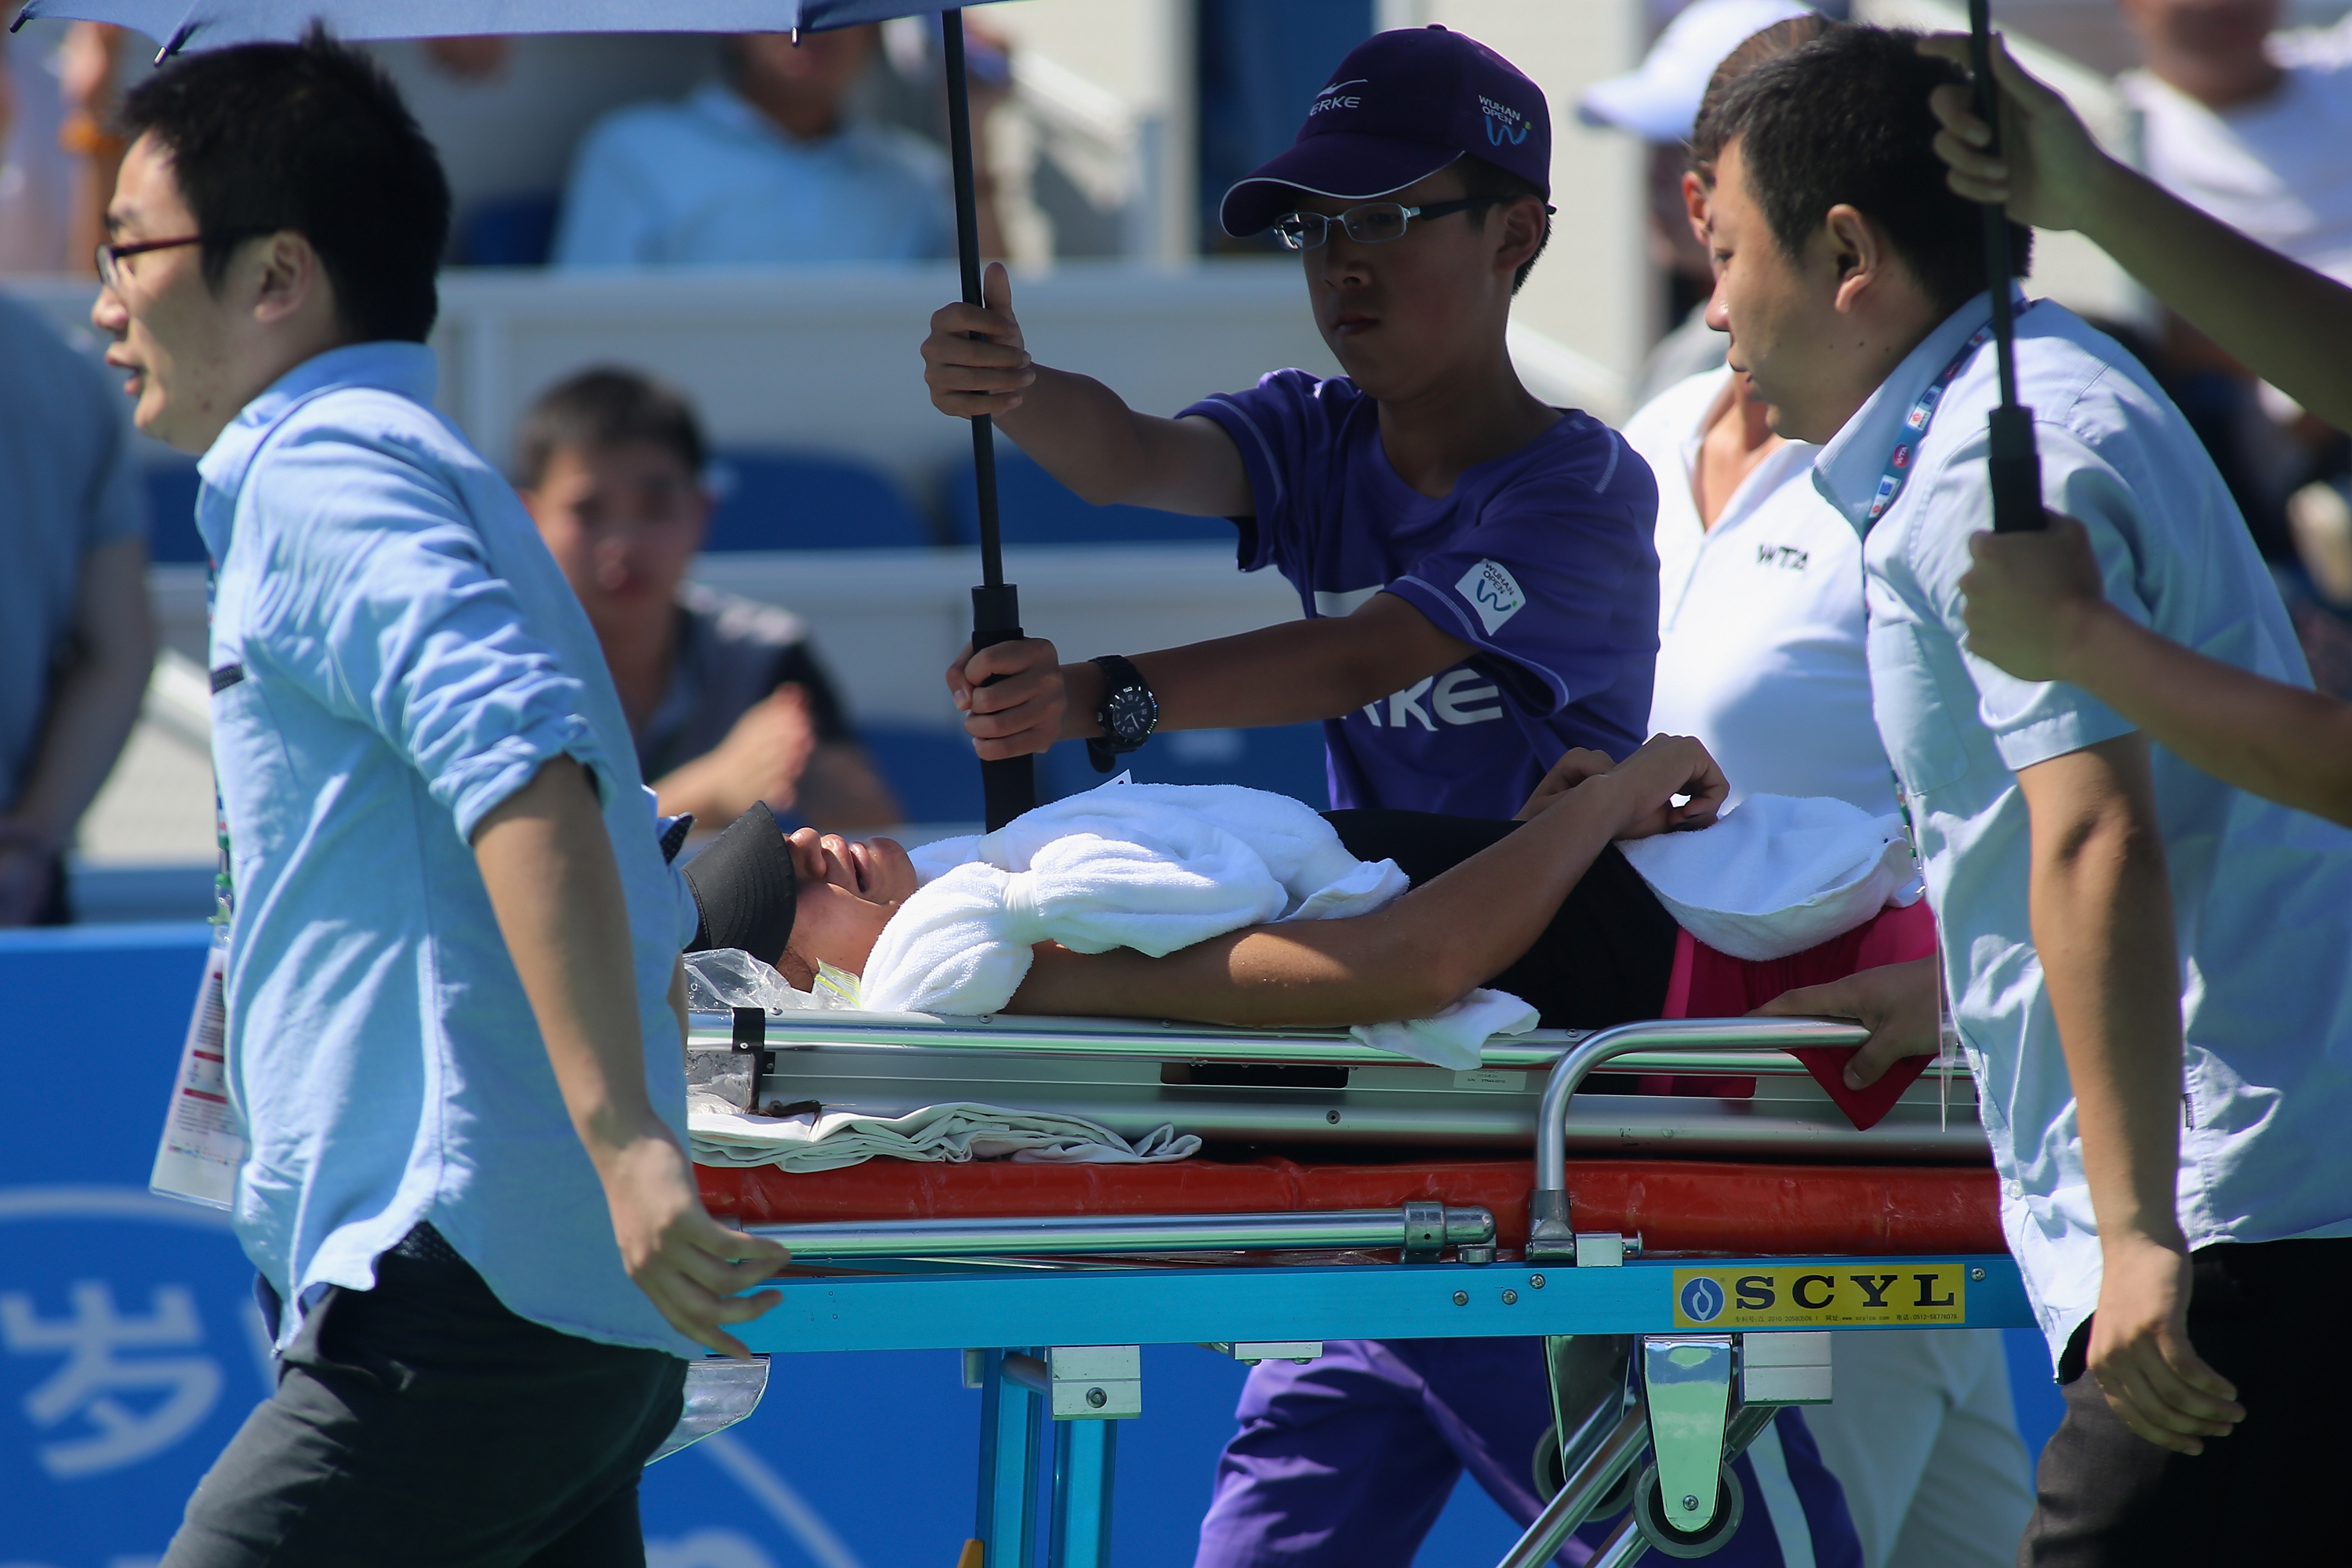 Shilin Xu of China lays on stretcher after injured during her match against American Alison Riske.